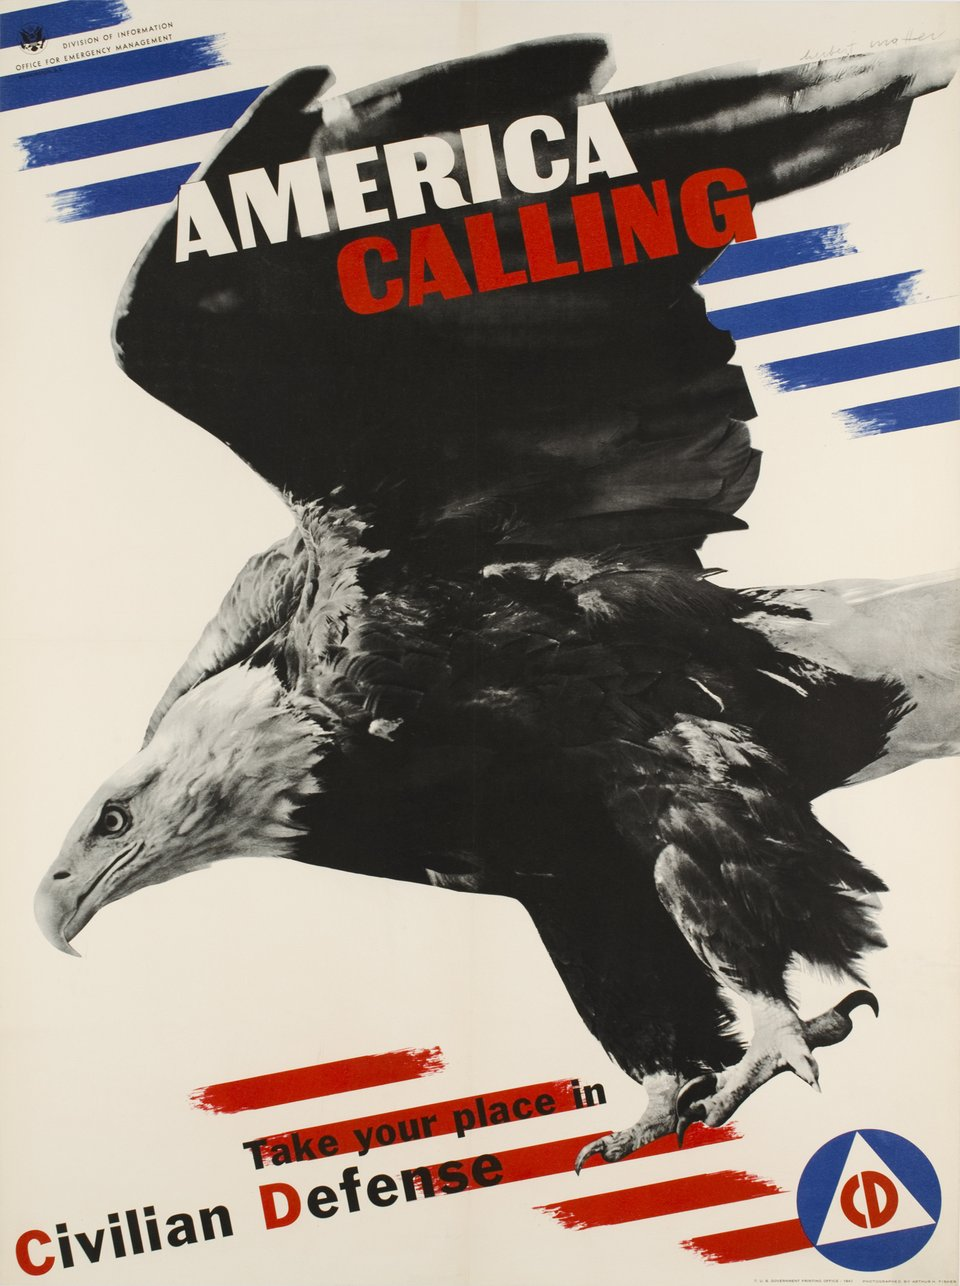 America calling, take your place in civilian defense – Affiche ancienne – Herbert MATTER – 1941